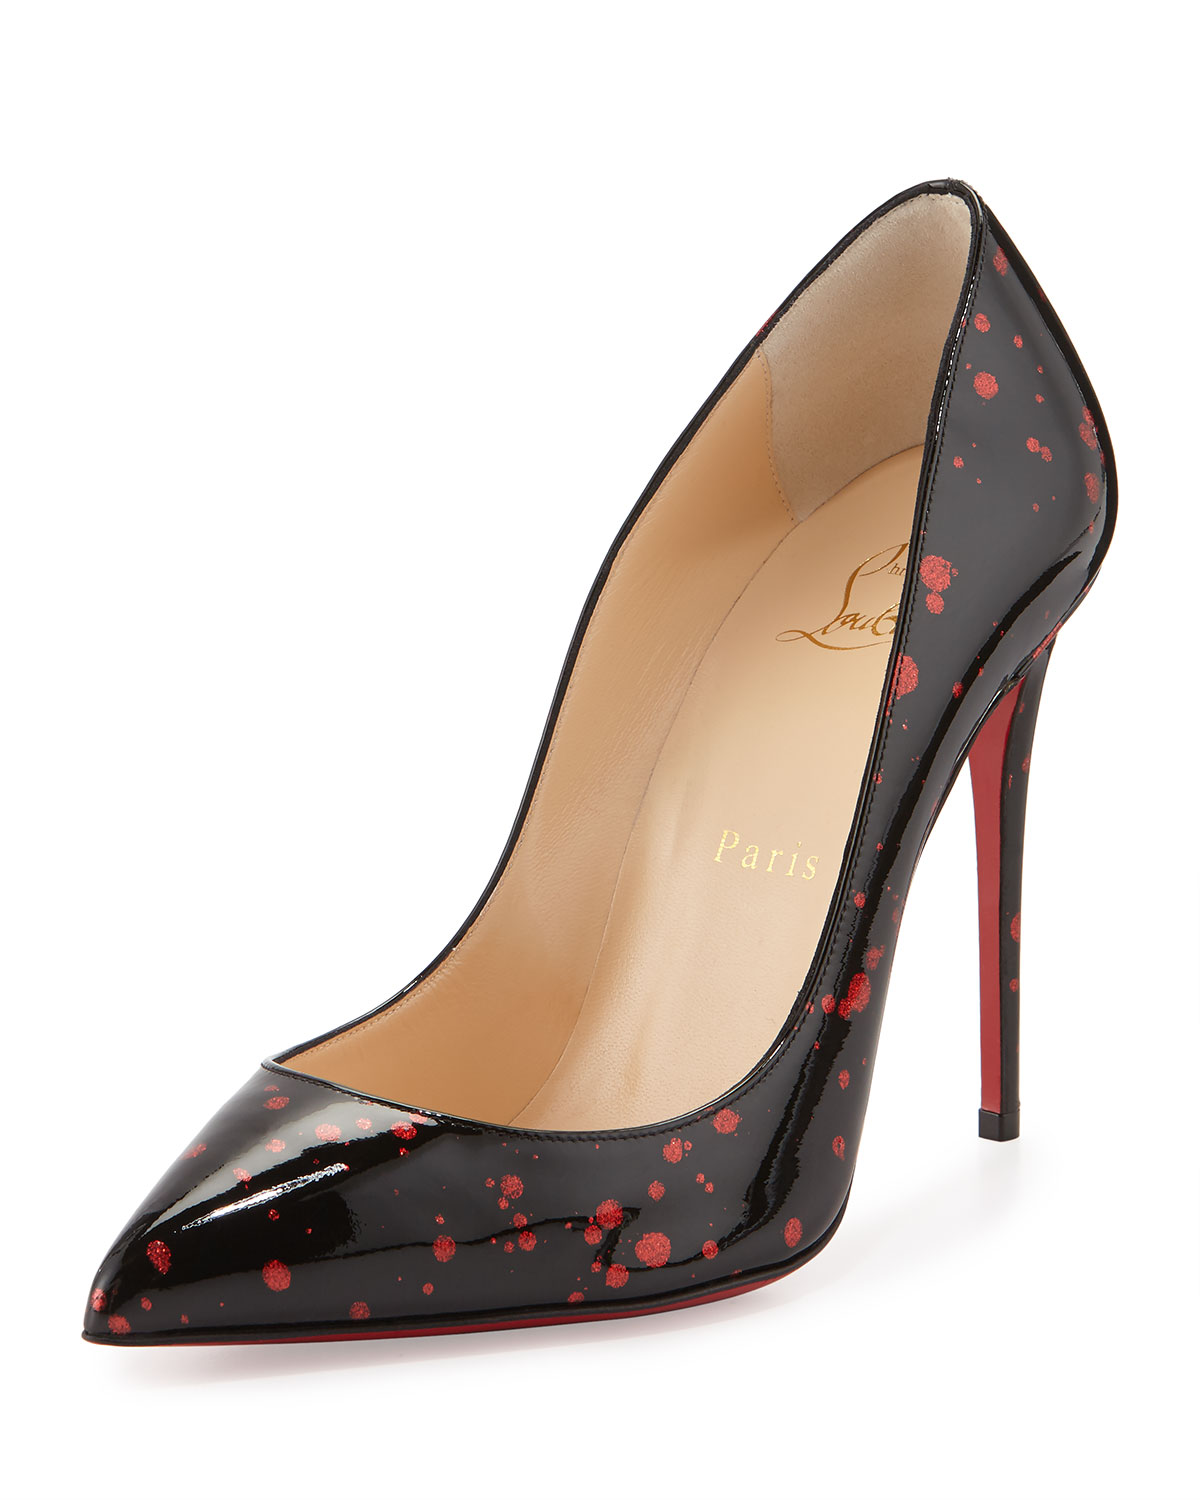 8135375ccc60 Christian LouboutinPigalle Follies Flecked Red Sole Pump